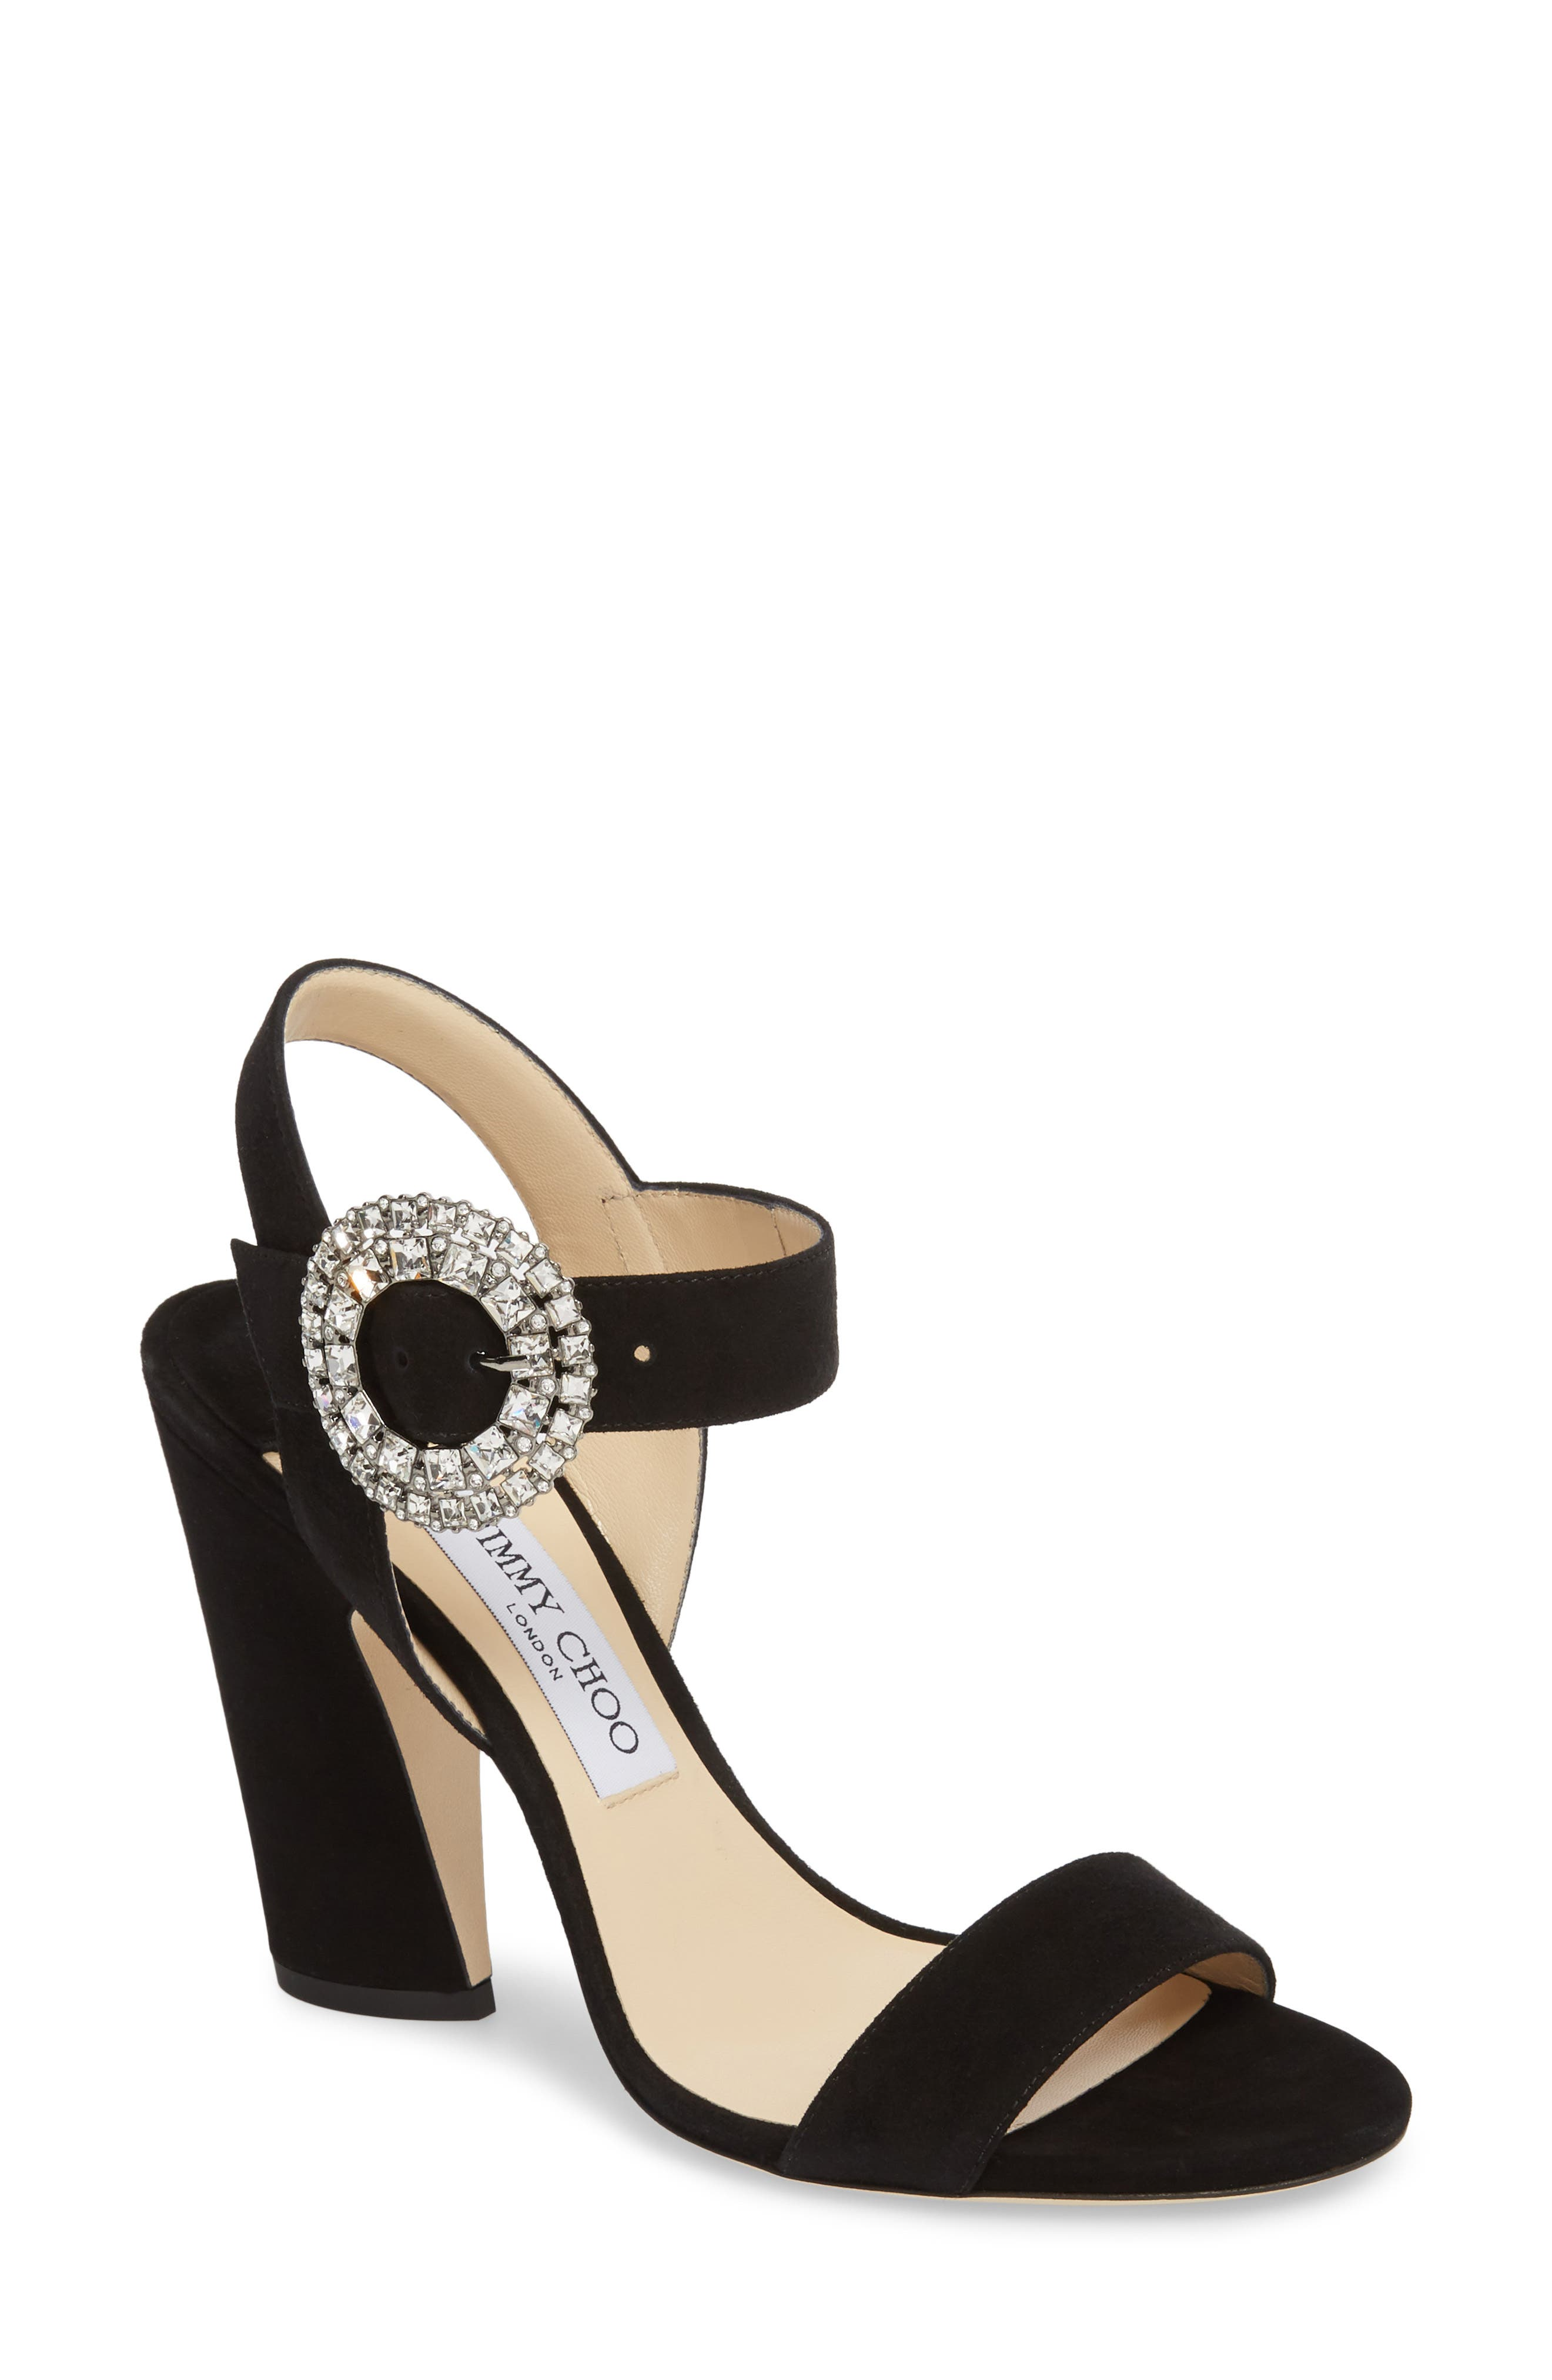 Mischa Crystal Buckle Sandal,                             Main thumbnail 1, color,                             Black